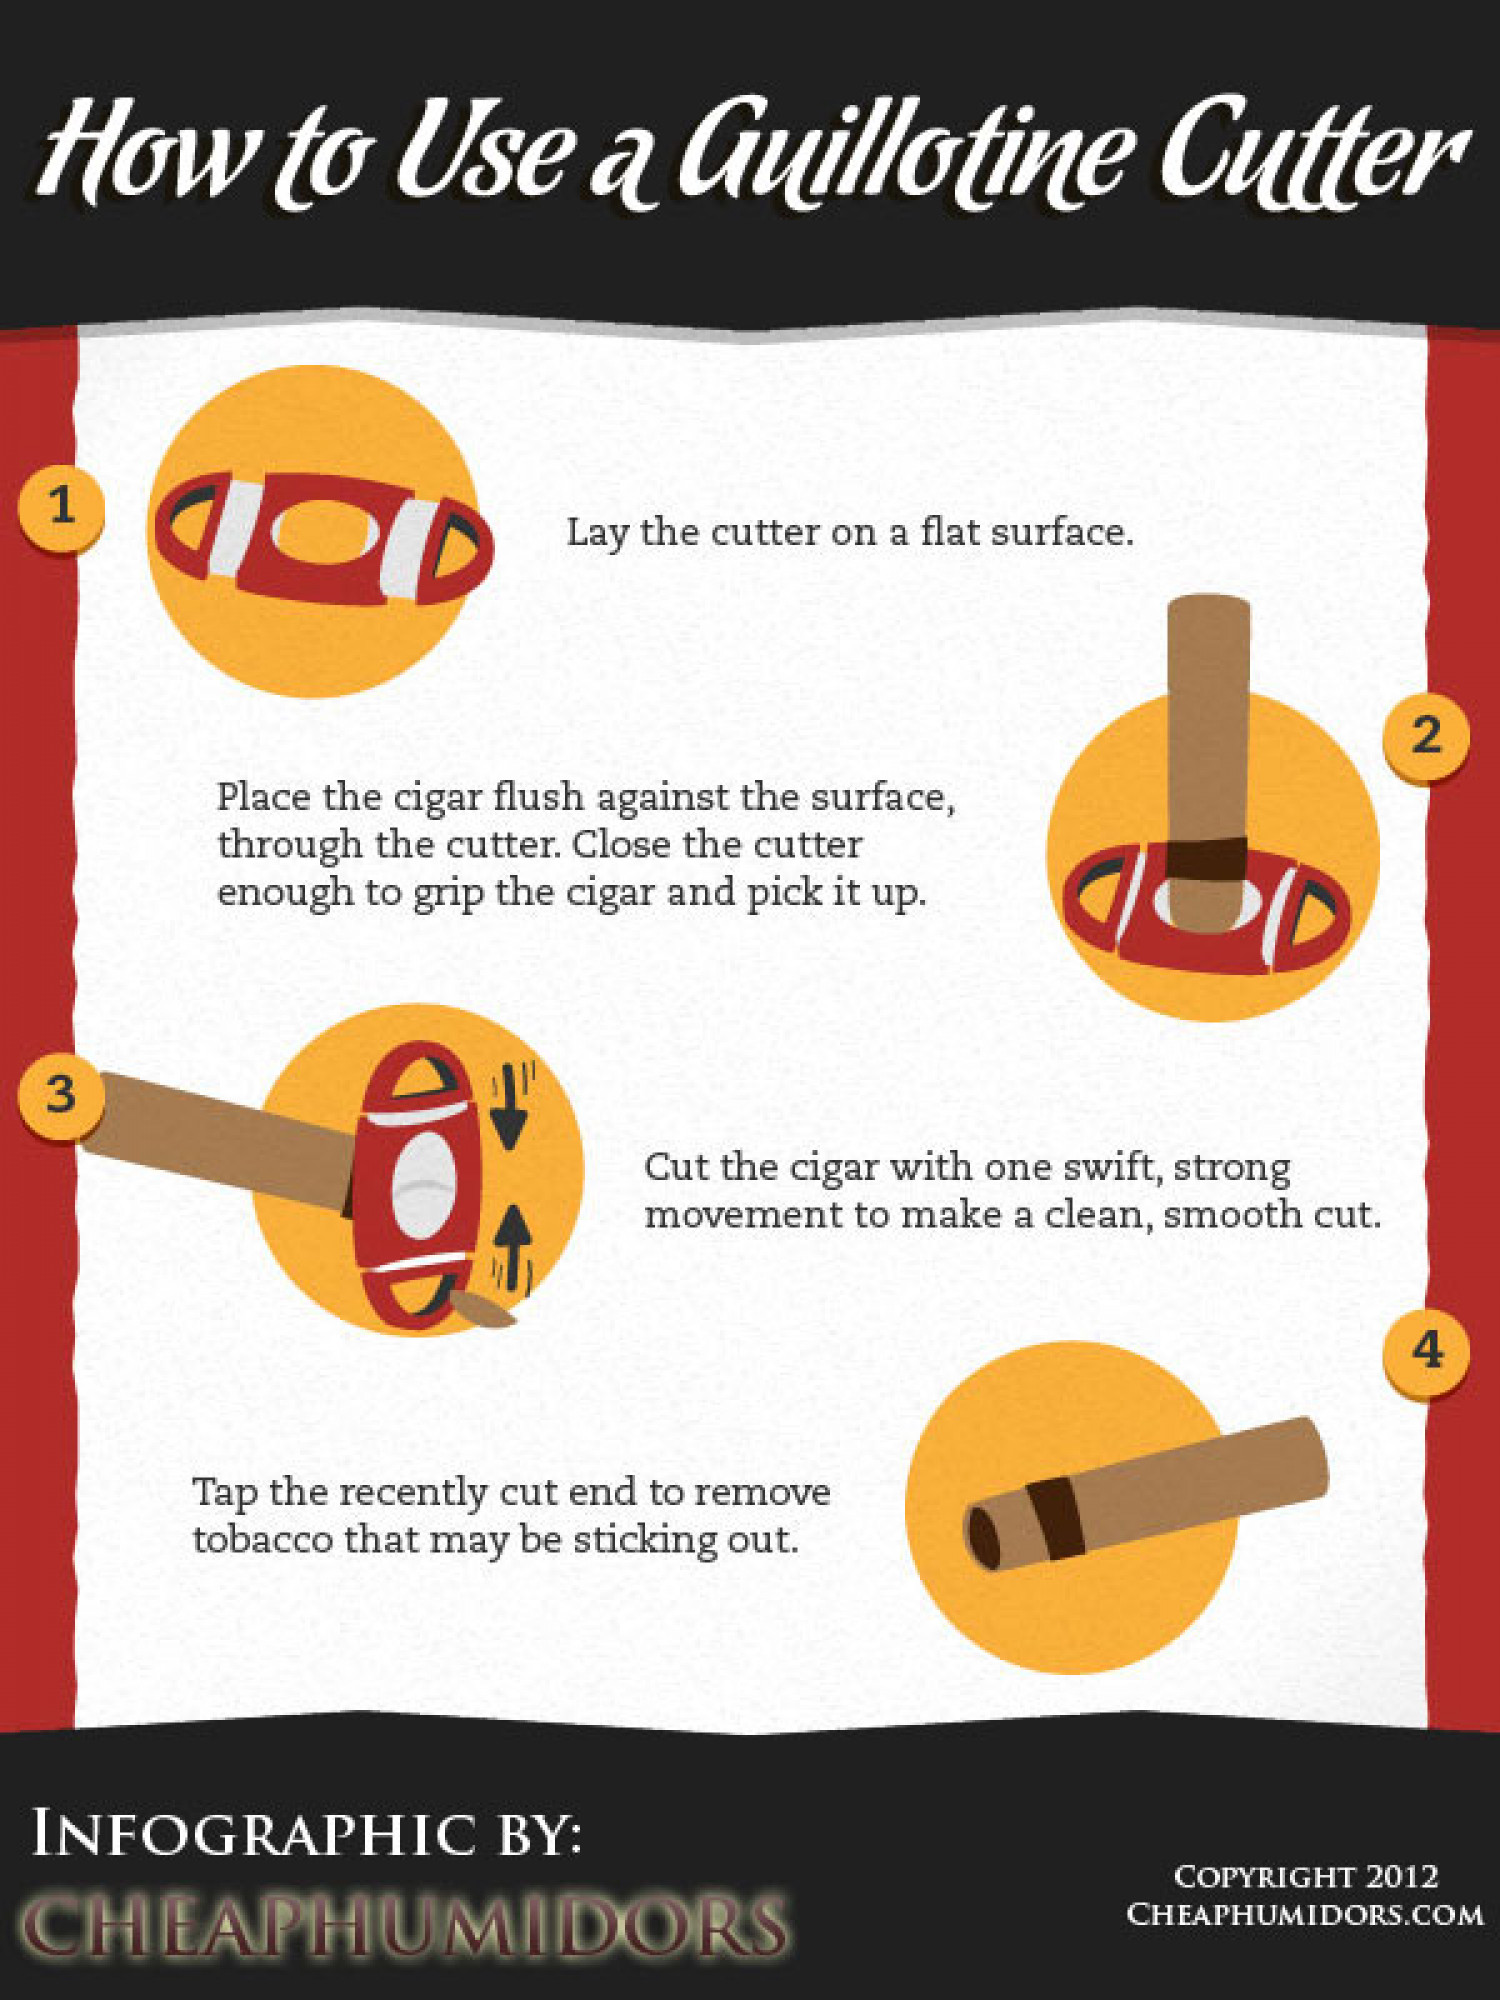 How to Use a Guillotine Cigar Cutter Infographic